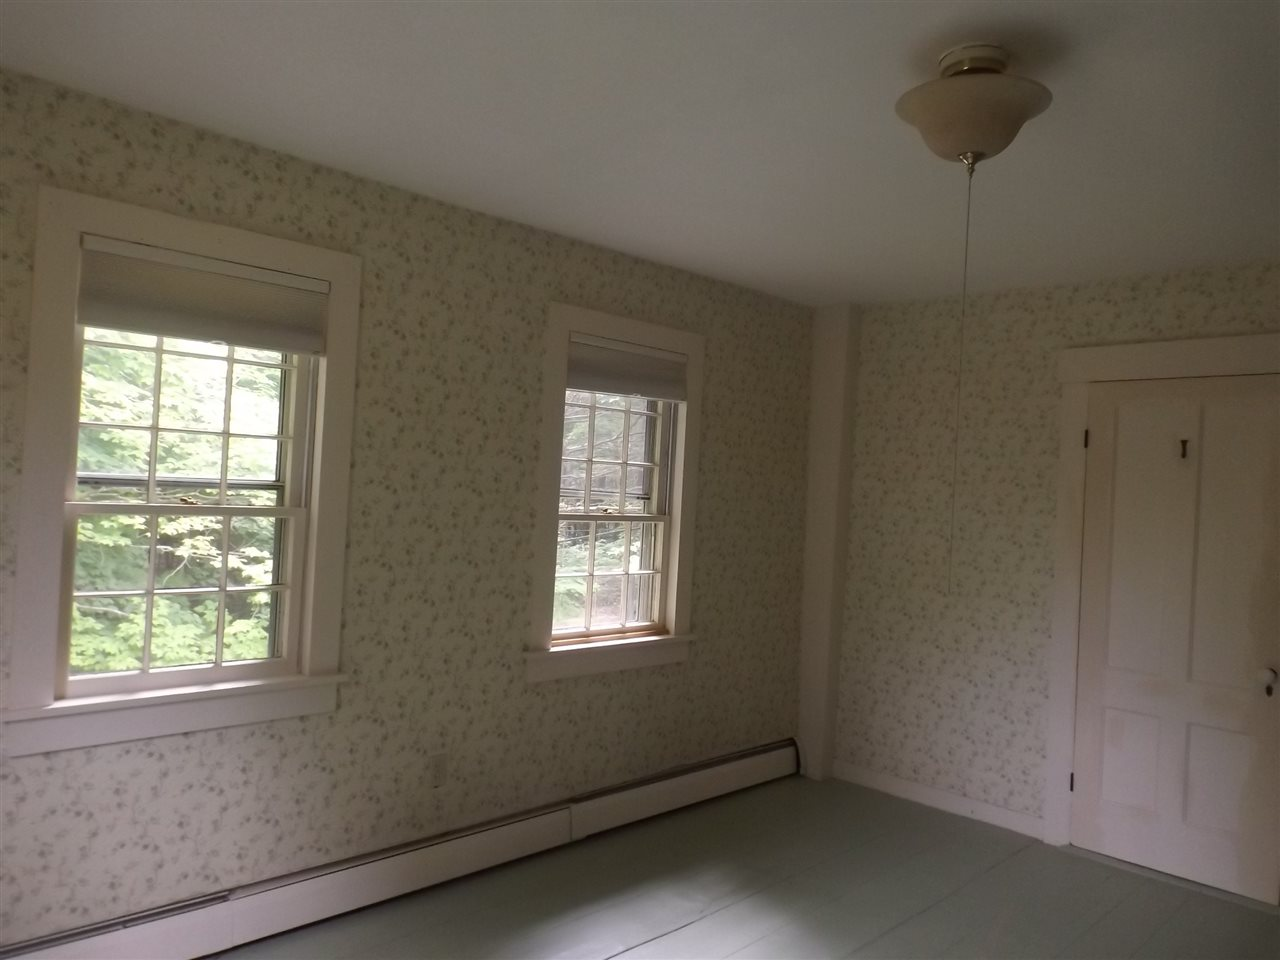 DEERFIELD NHOther for rent $Other For Lease: $2,800 with Lease Term